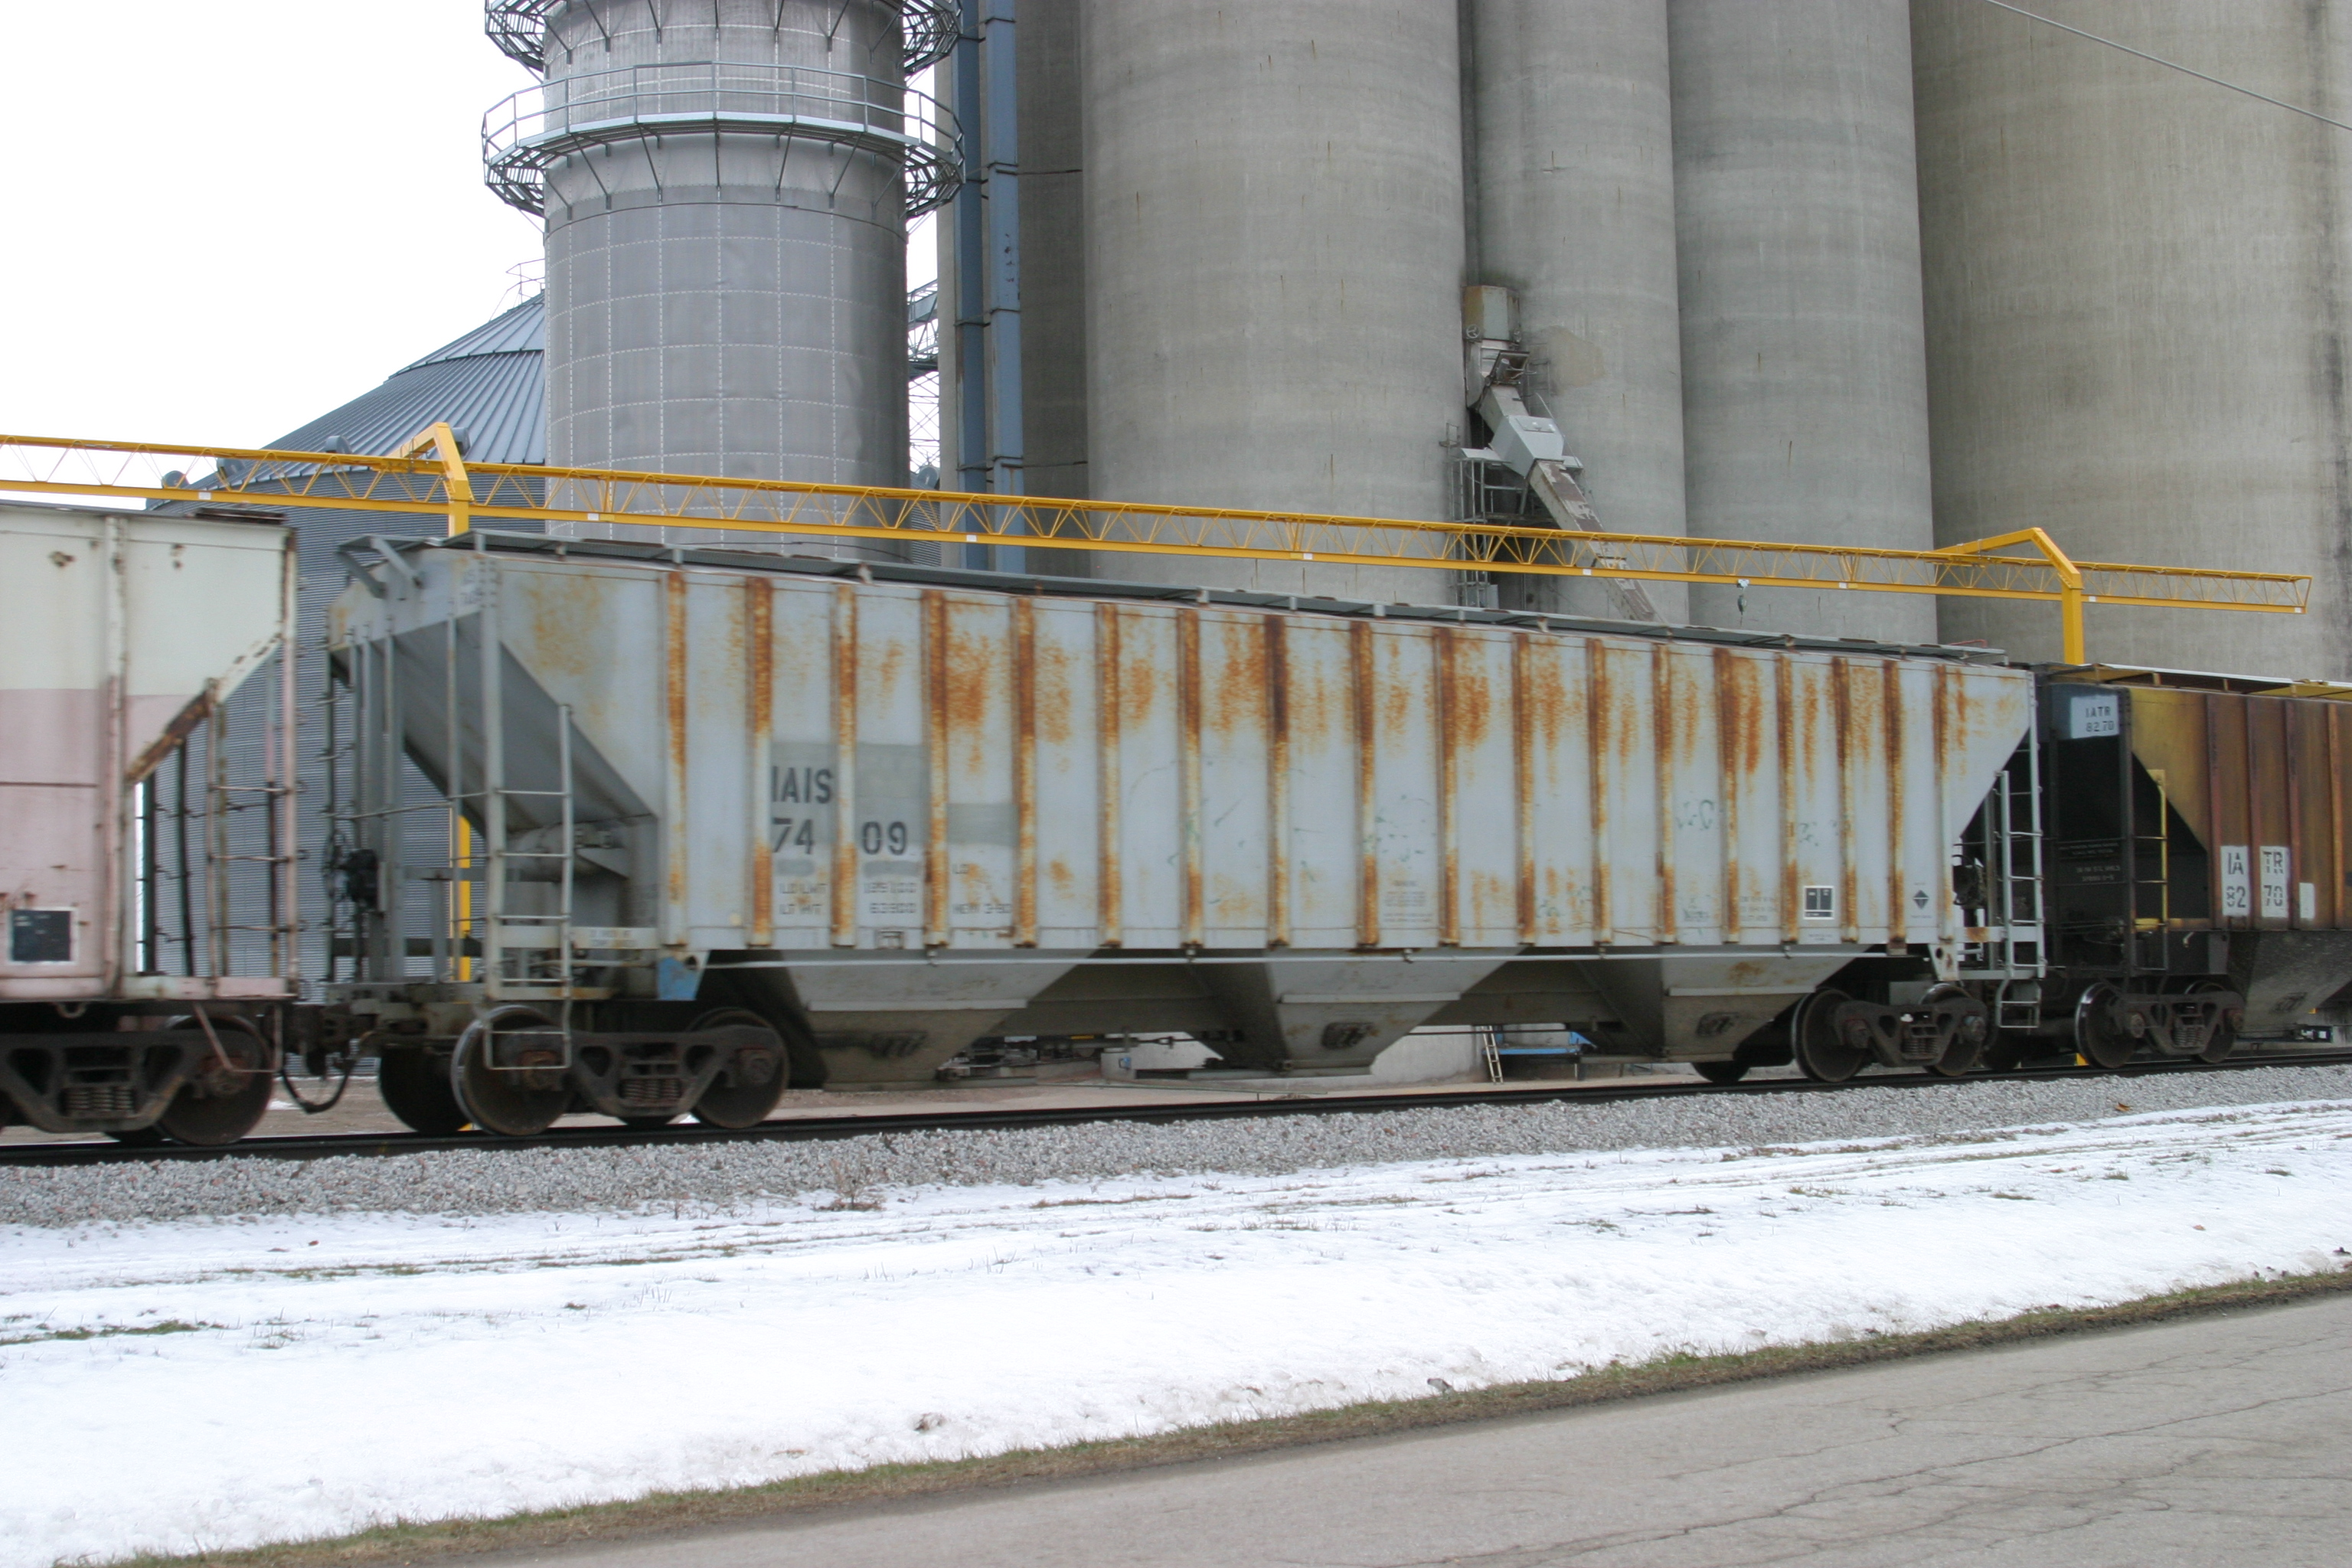 IAIS 7409 at Kellogg, IA, on 30-Dec-2005